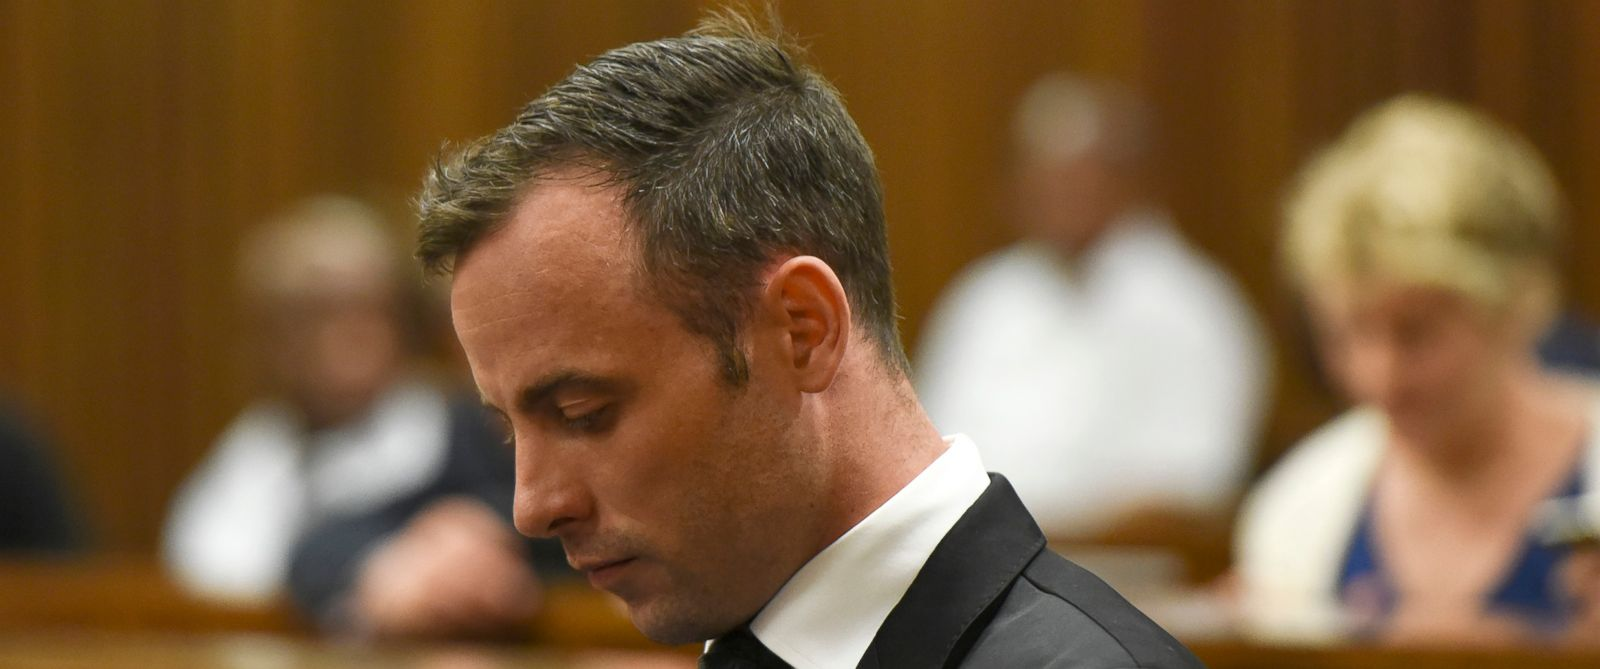 Oscar Pistorius appears in court in South Africa Dec. 8, 2015.